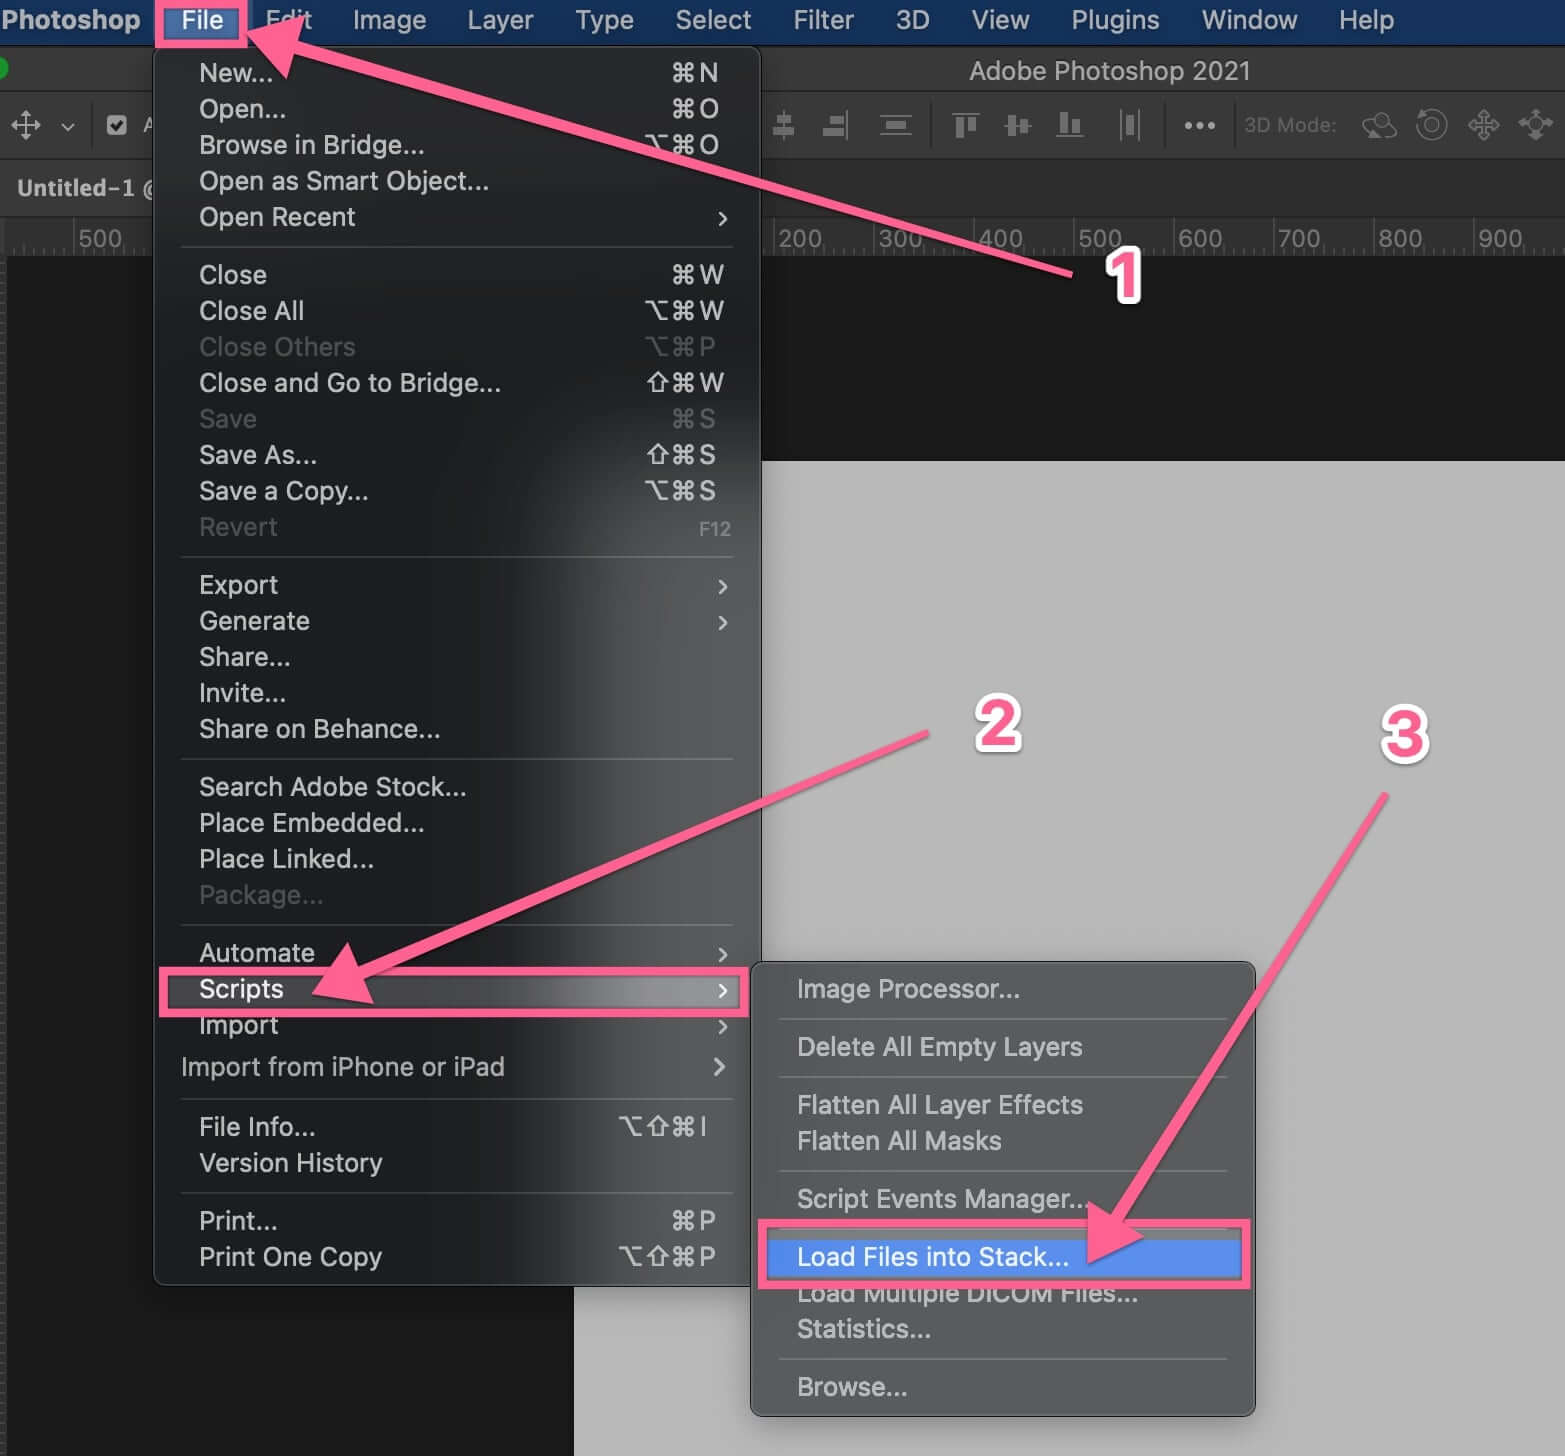 Load files into stack on Photoshop